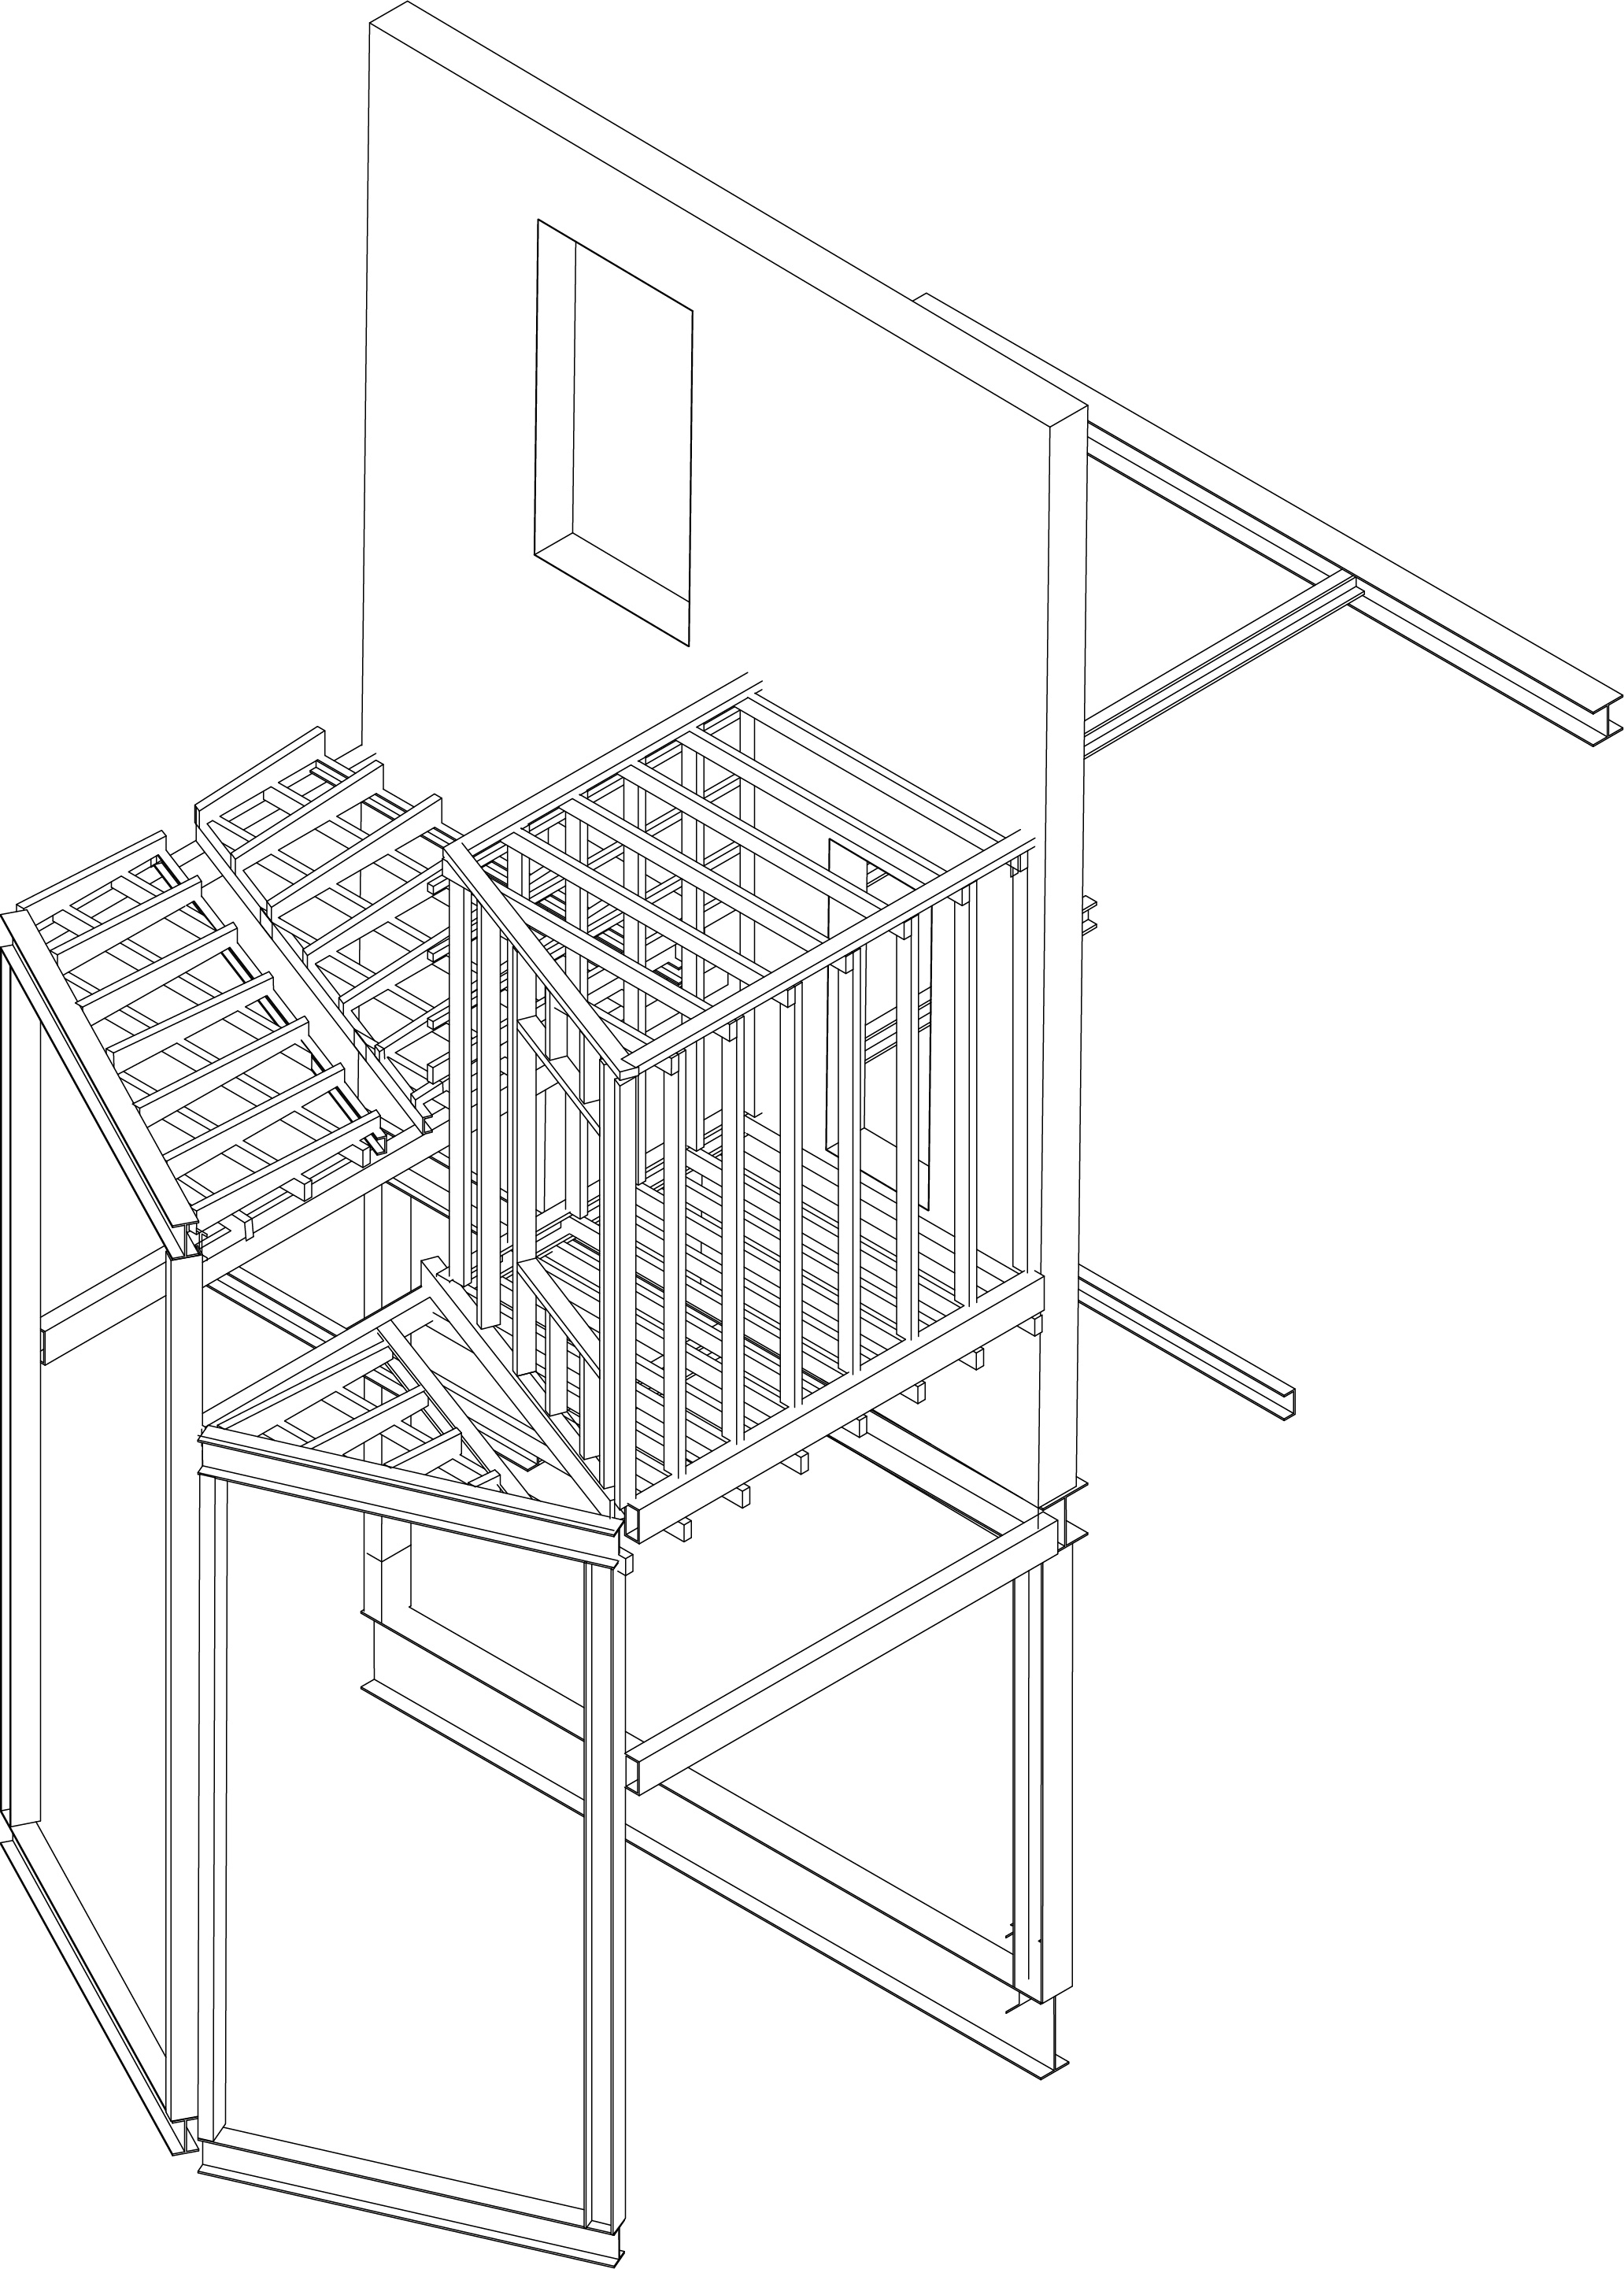 PARTI_03_RydonSt_Drawing_Structural.jpg